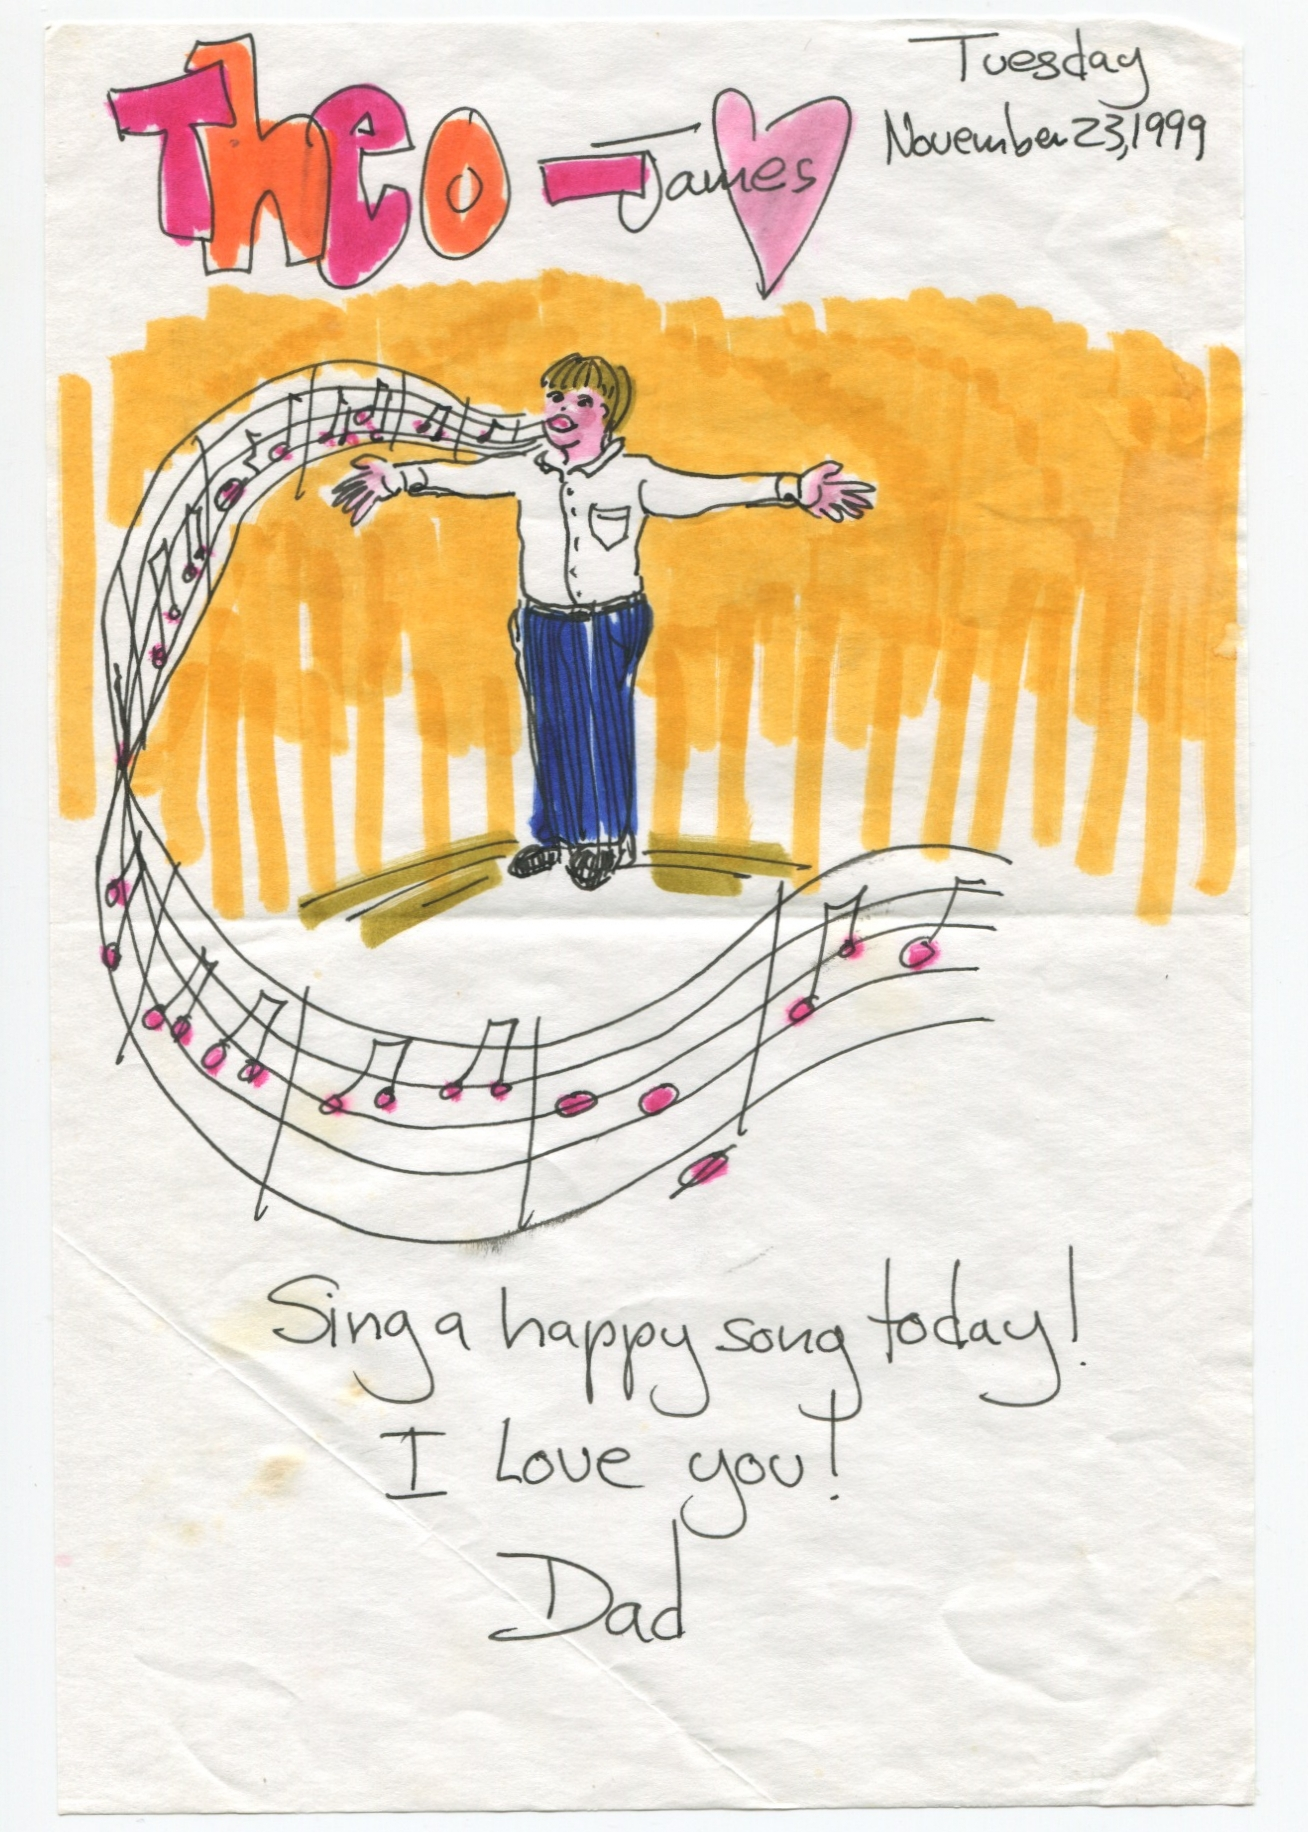 Sing a happy song today! I love you!